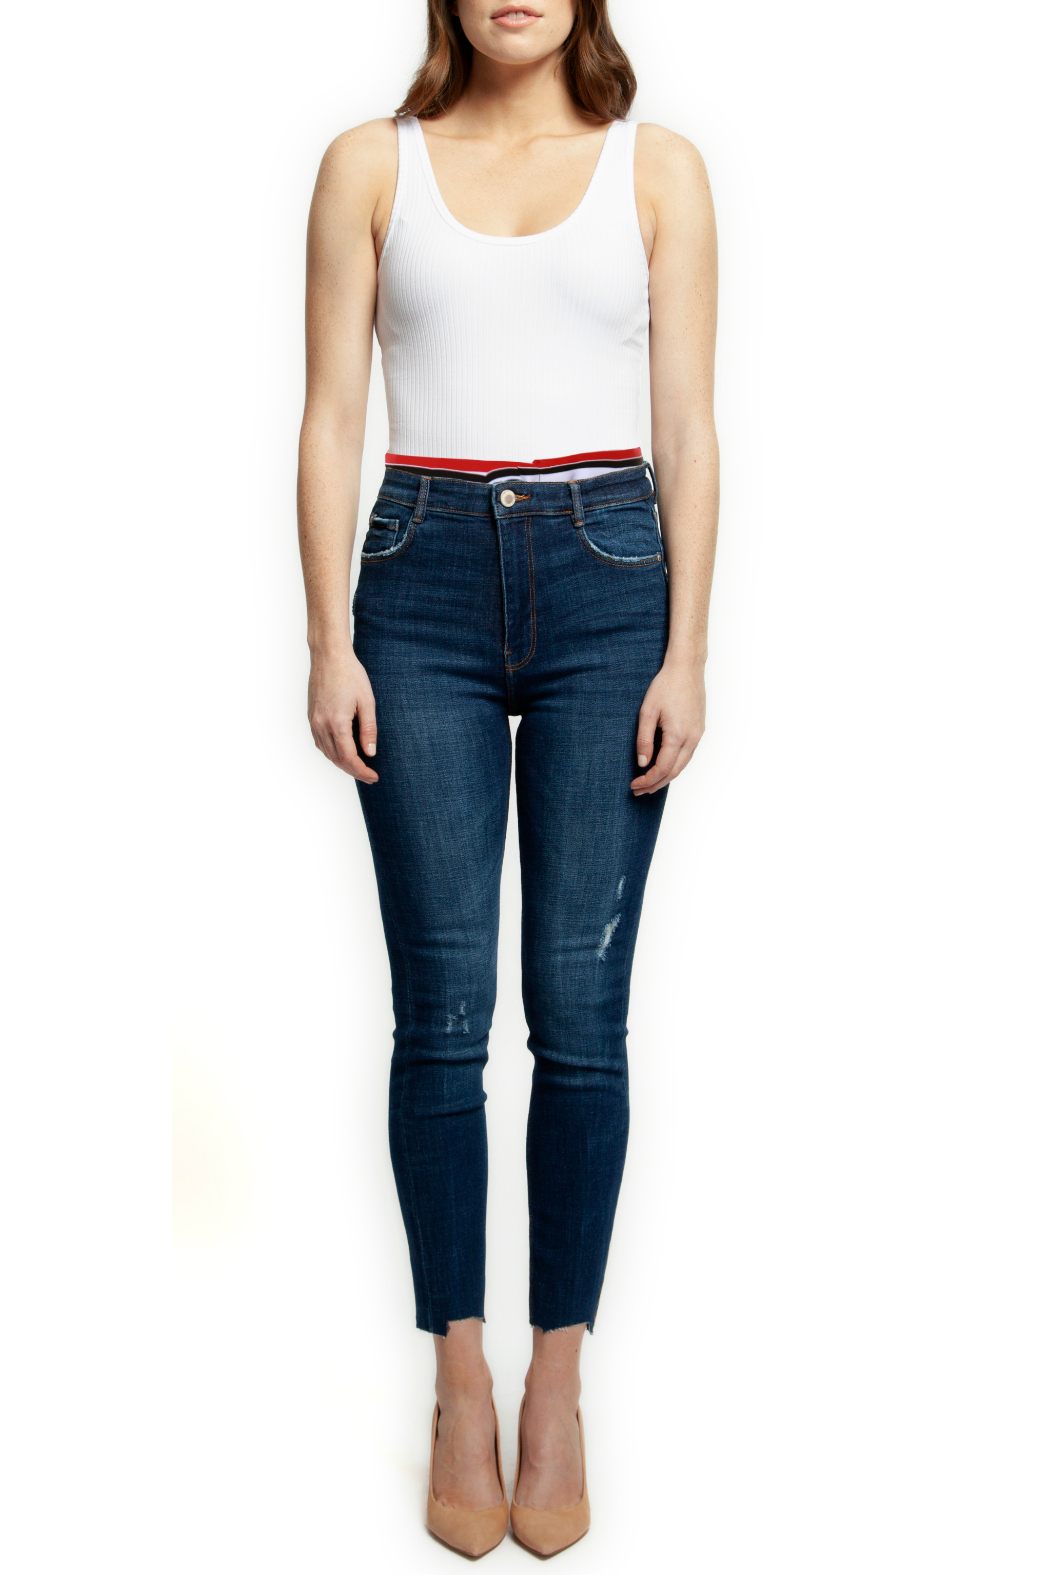 bdd0889b1c6c Dex Skinny Jean w Sporty Elastic Waistband from New Jersey by ...